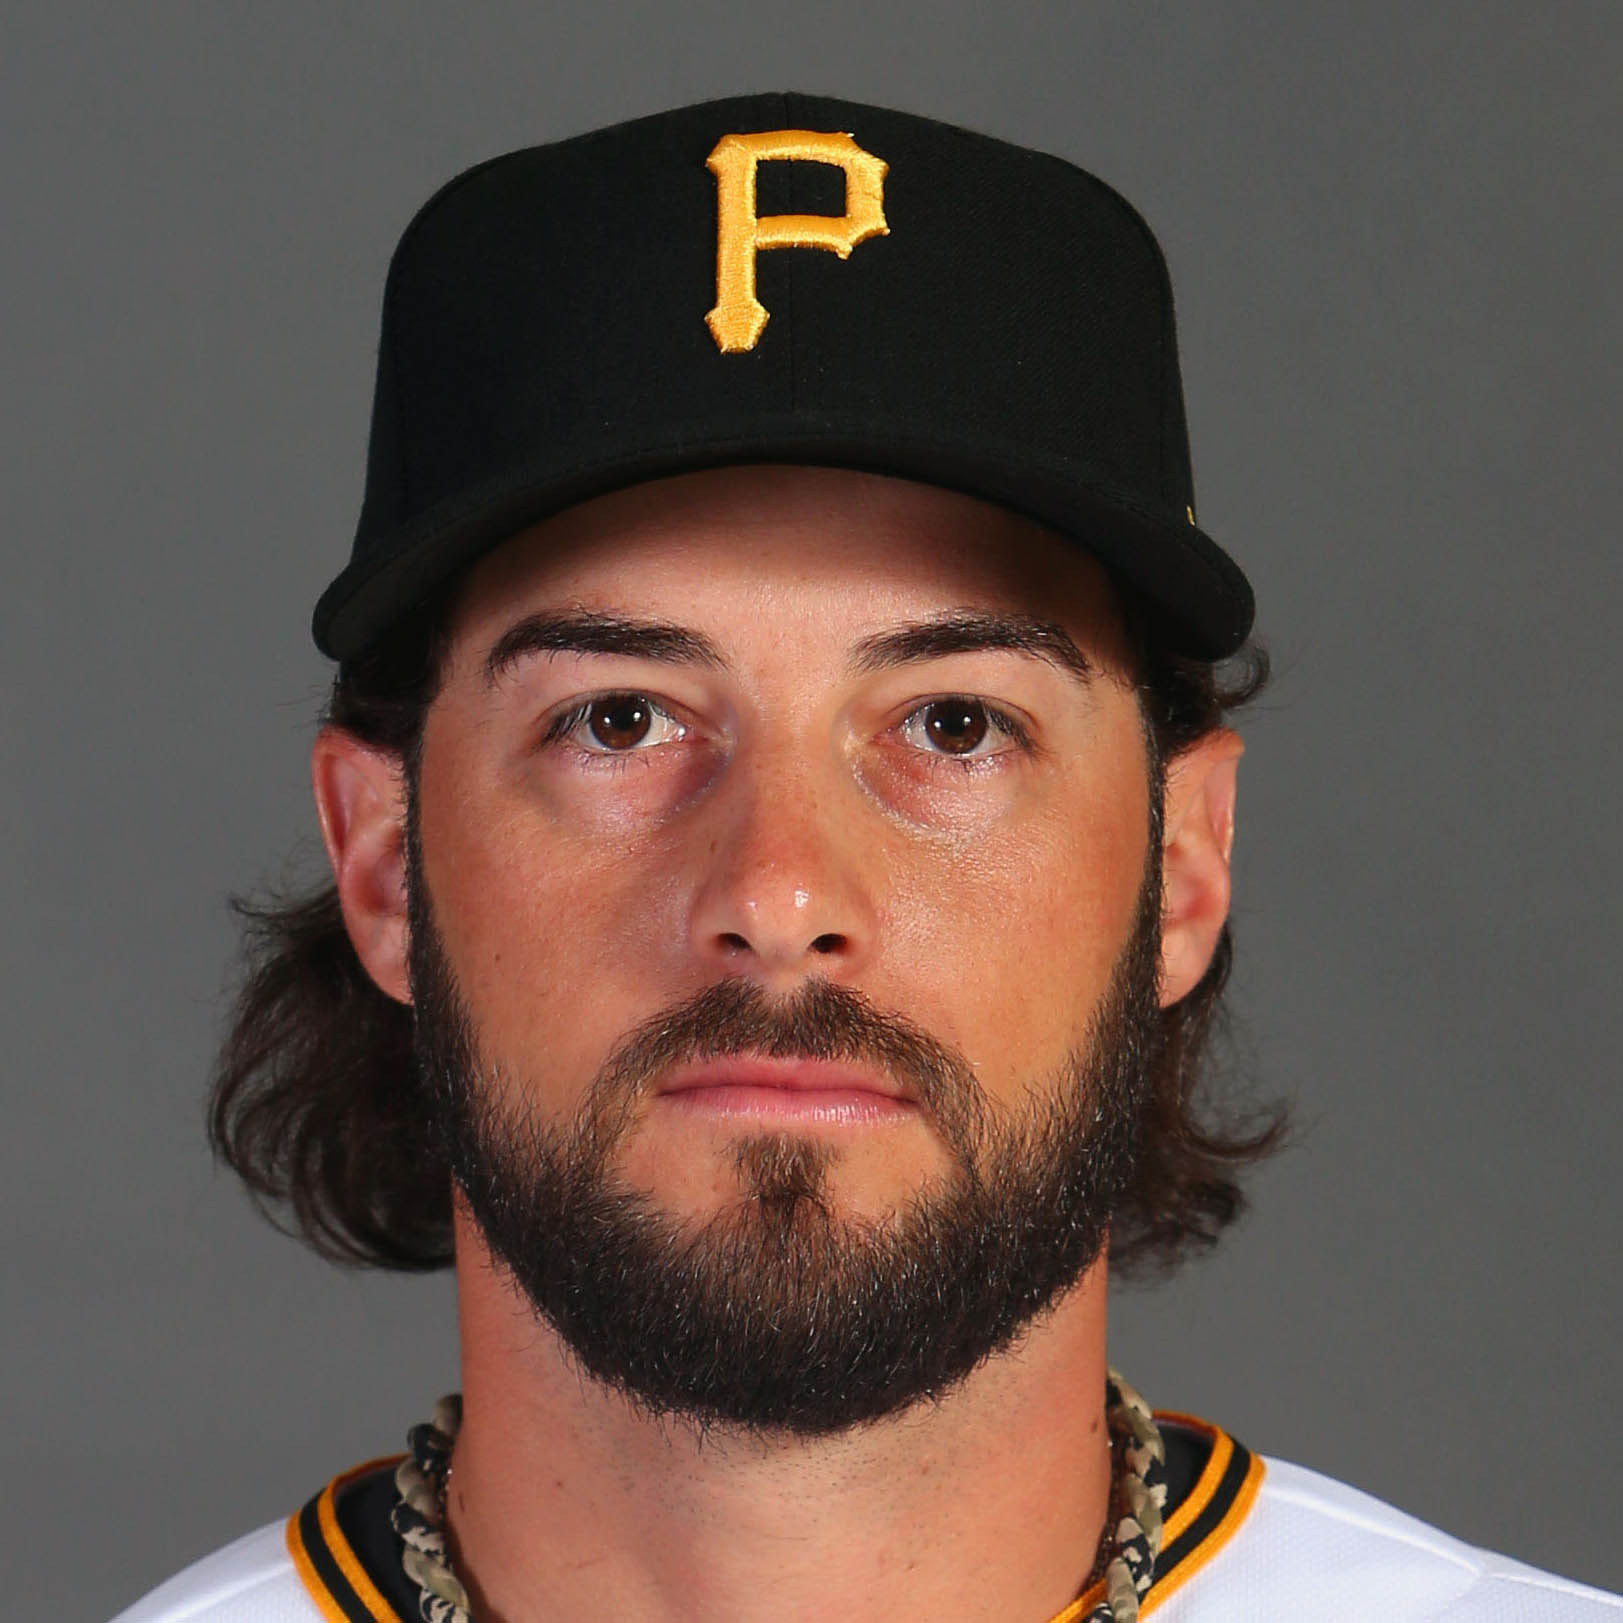 George Kontos (R) Headshot